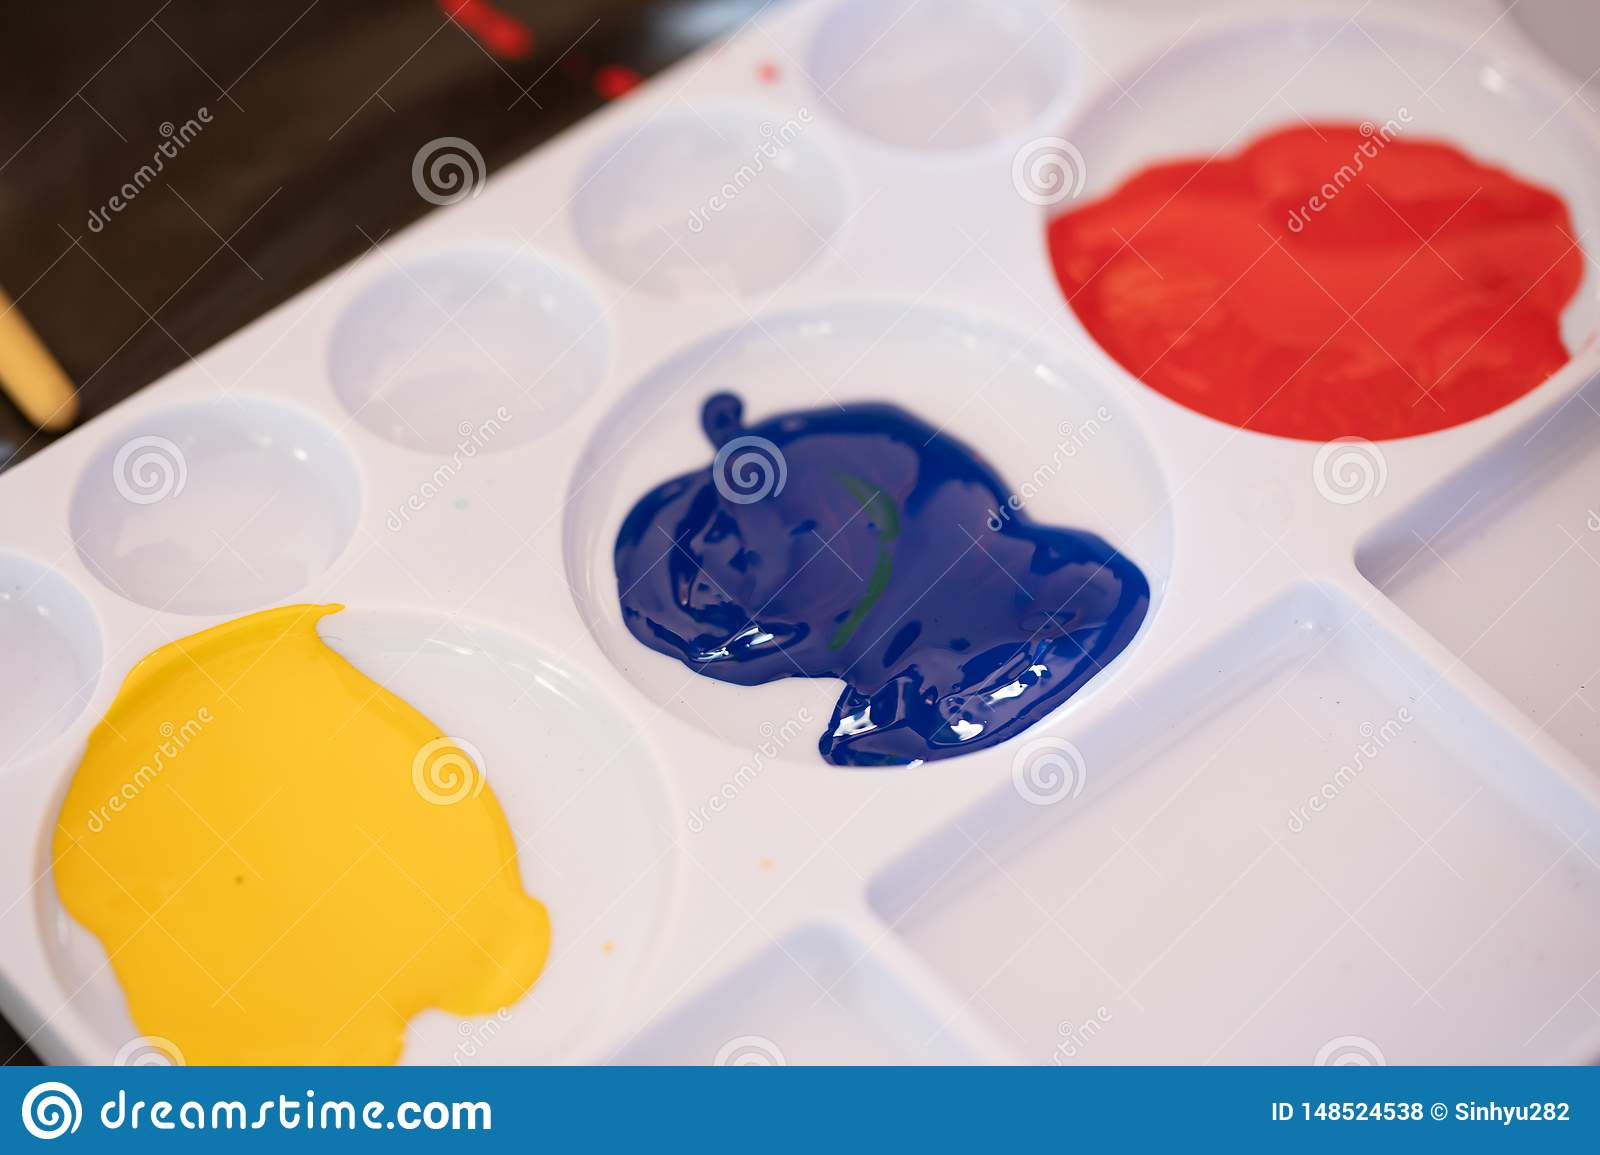 Close up of different color oil paint, Patterns or backgrounds of various colors.